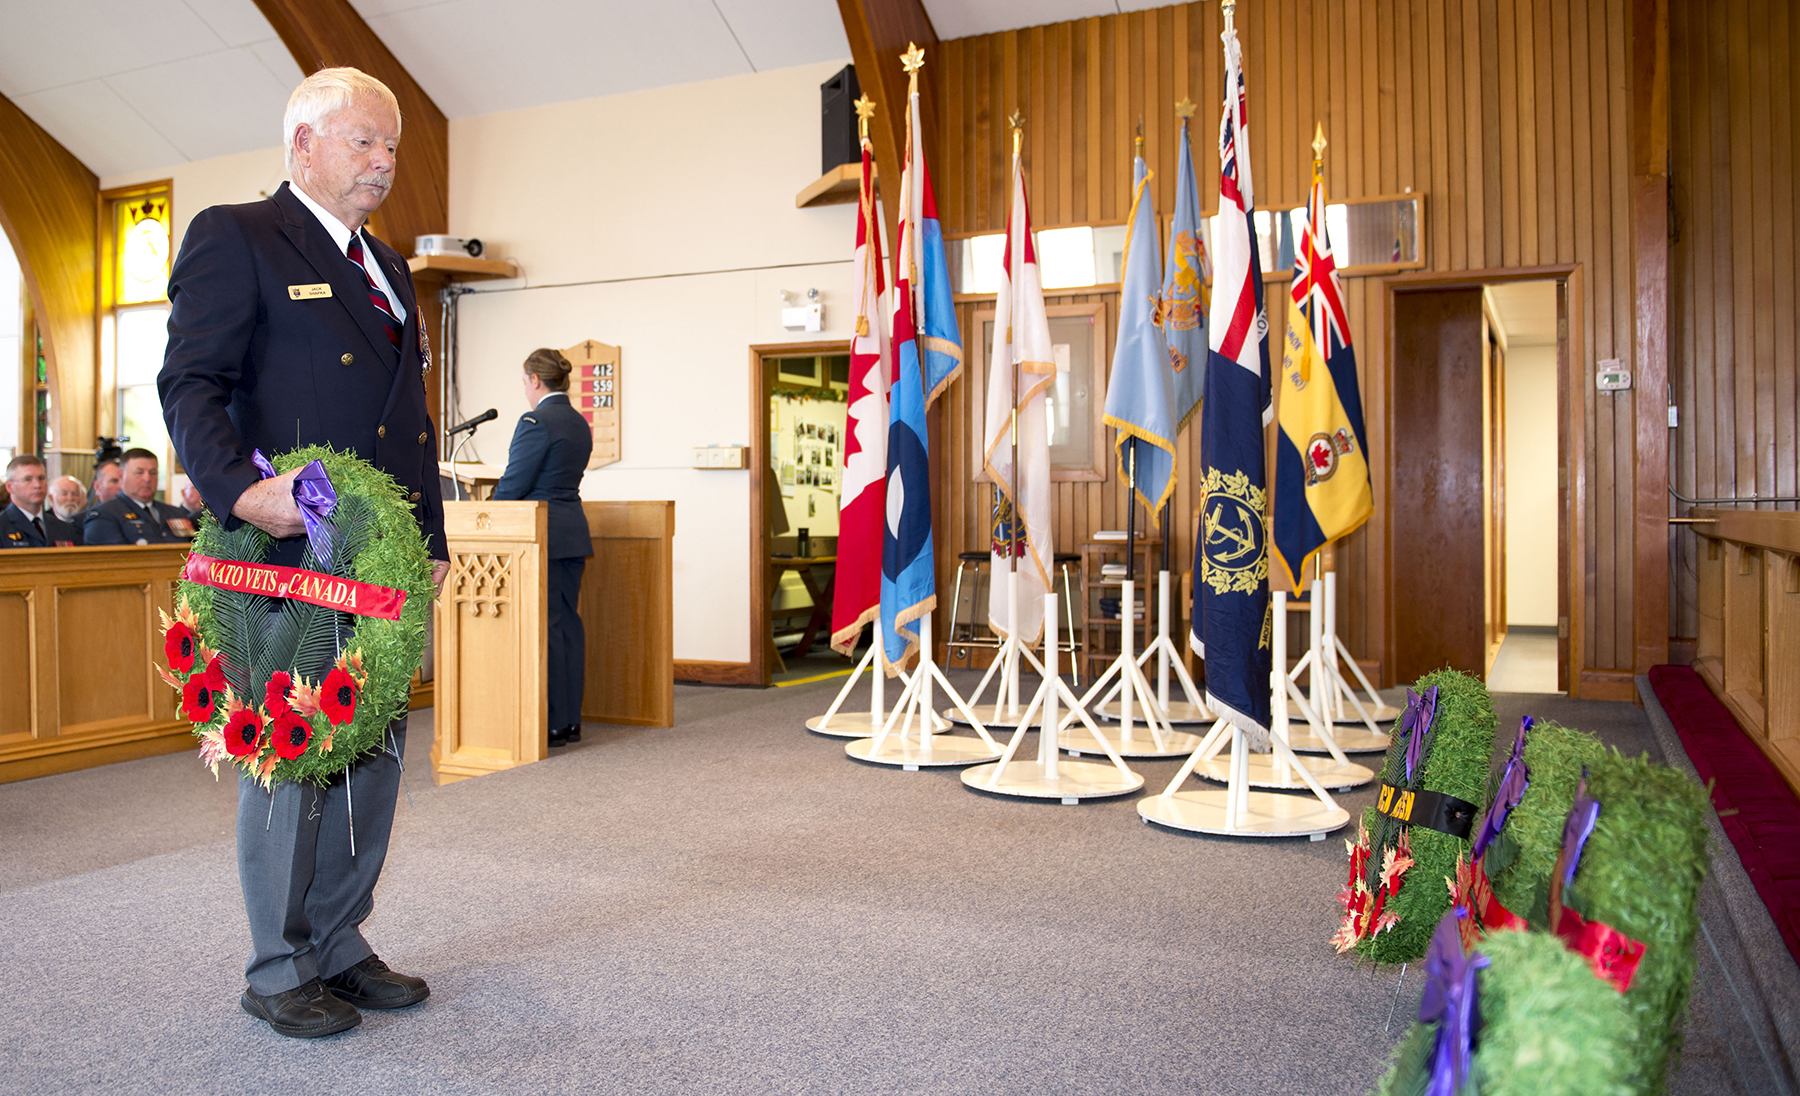 Veteran Jack Shapka prepares to lay a wreath on behalf of the NATO Veterans Organization of Canada during the Battle of Britain service held on September 17, 2017, in St. Michael and All Angels Chapel in Comox, British Columbia. PHOTO: Master Seaman Roxanne Wood, CX04-2017-0355-020